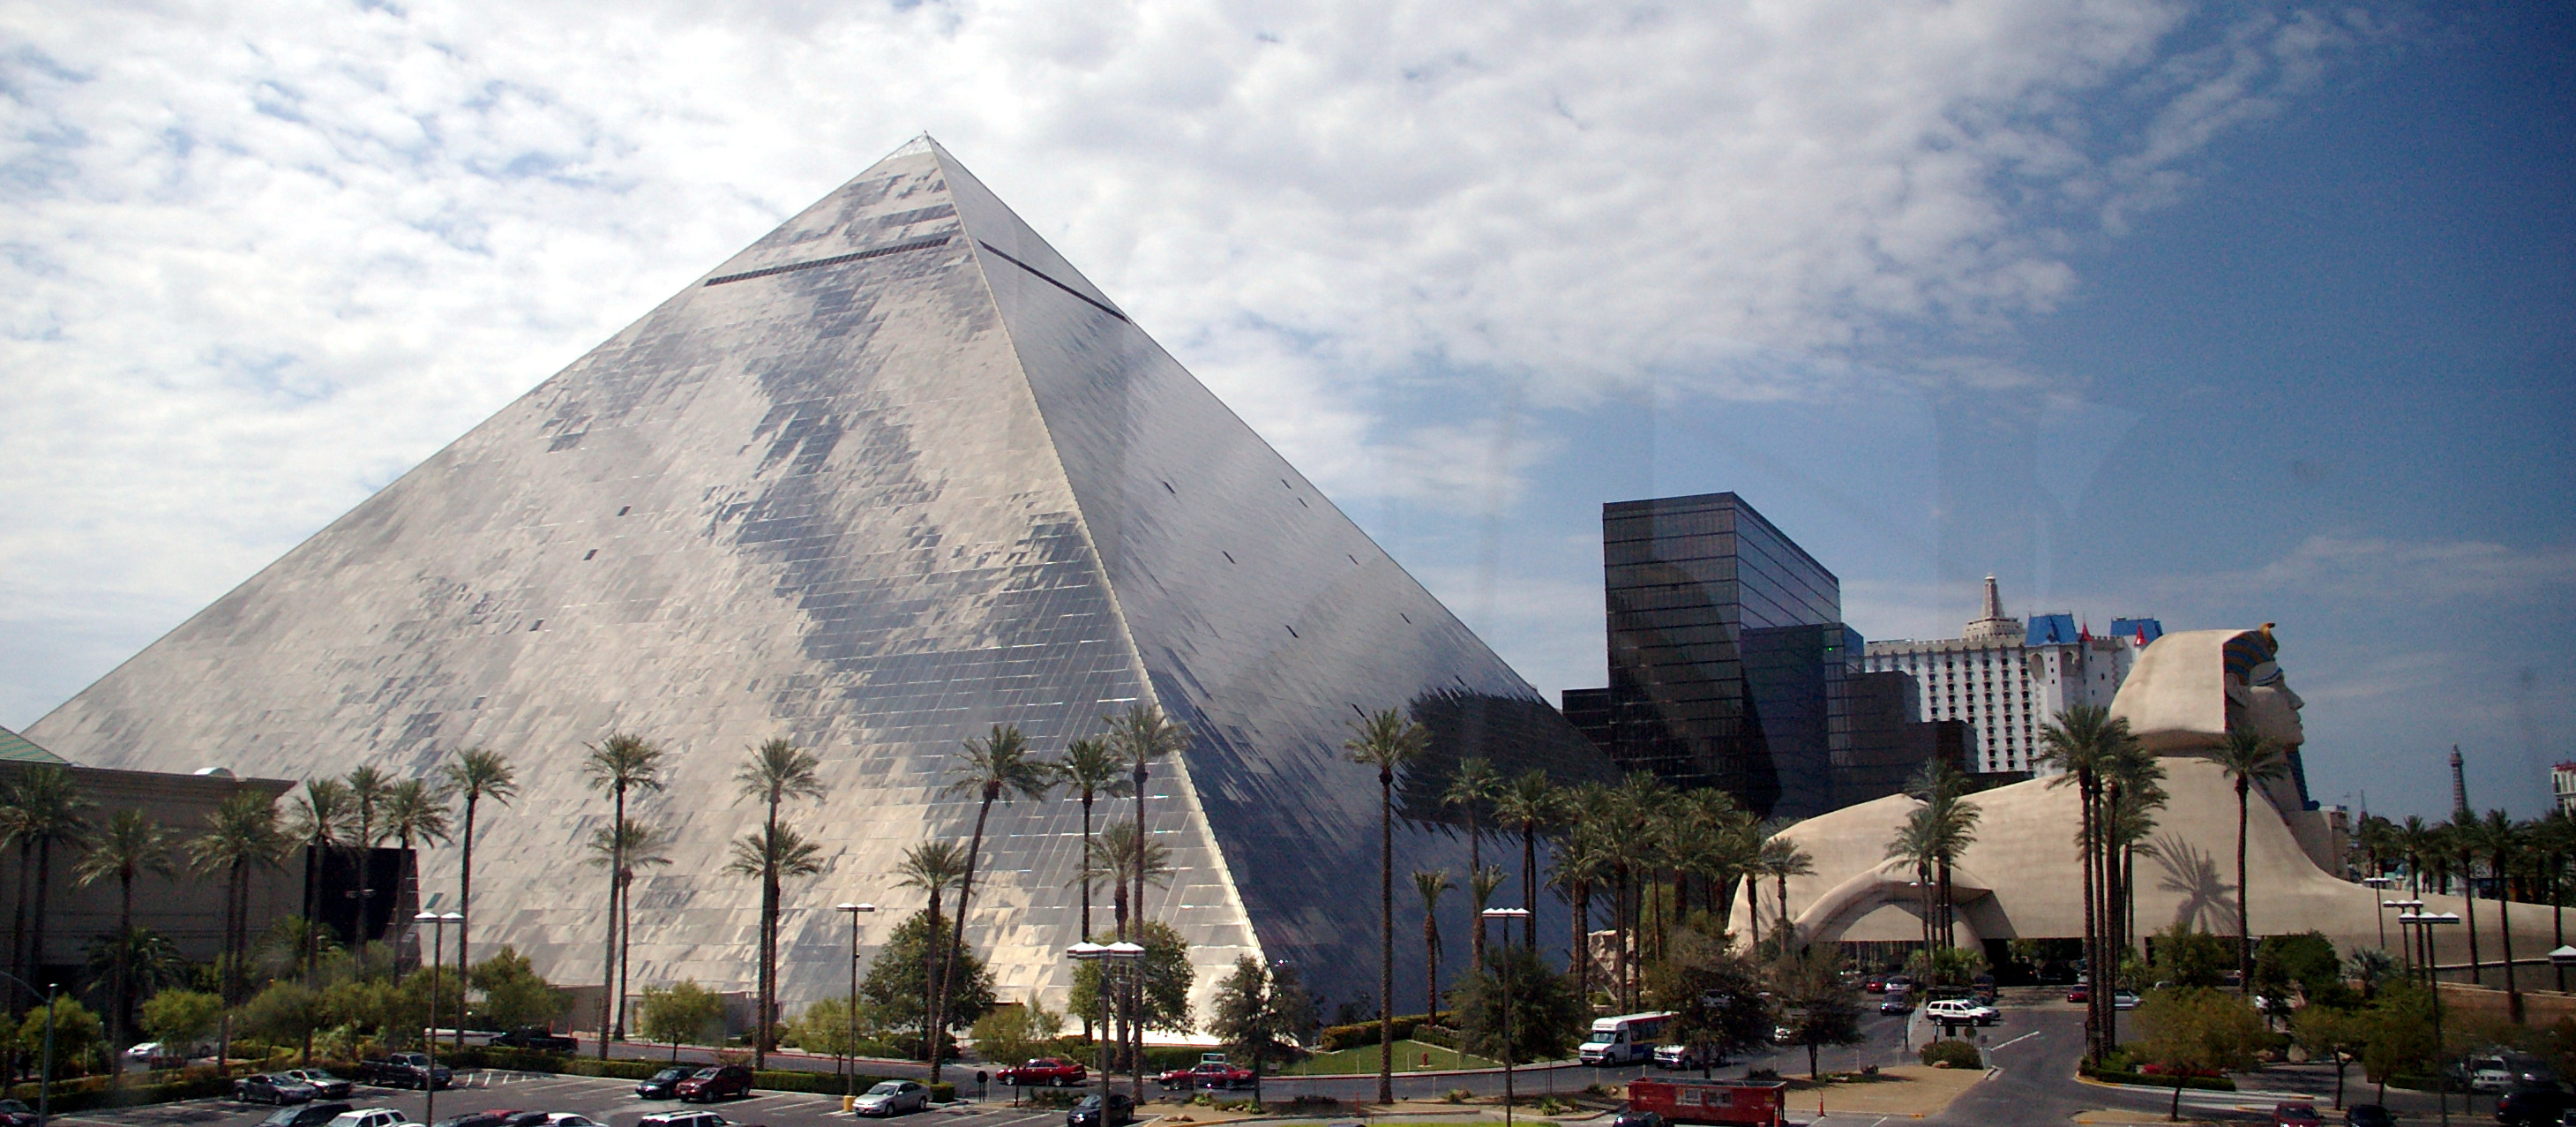 The luxor casino start your own online casino for free